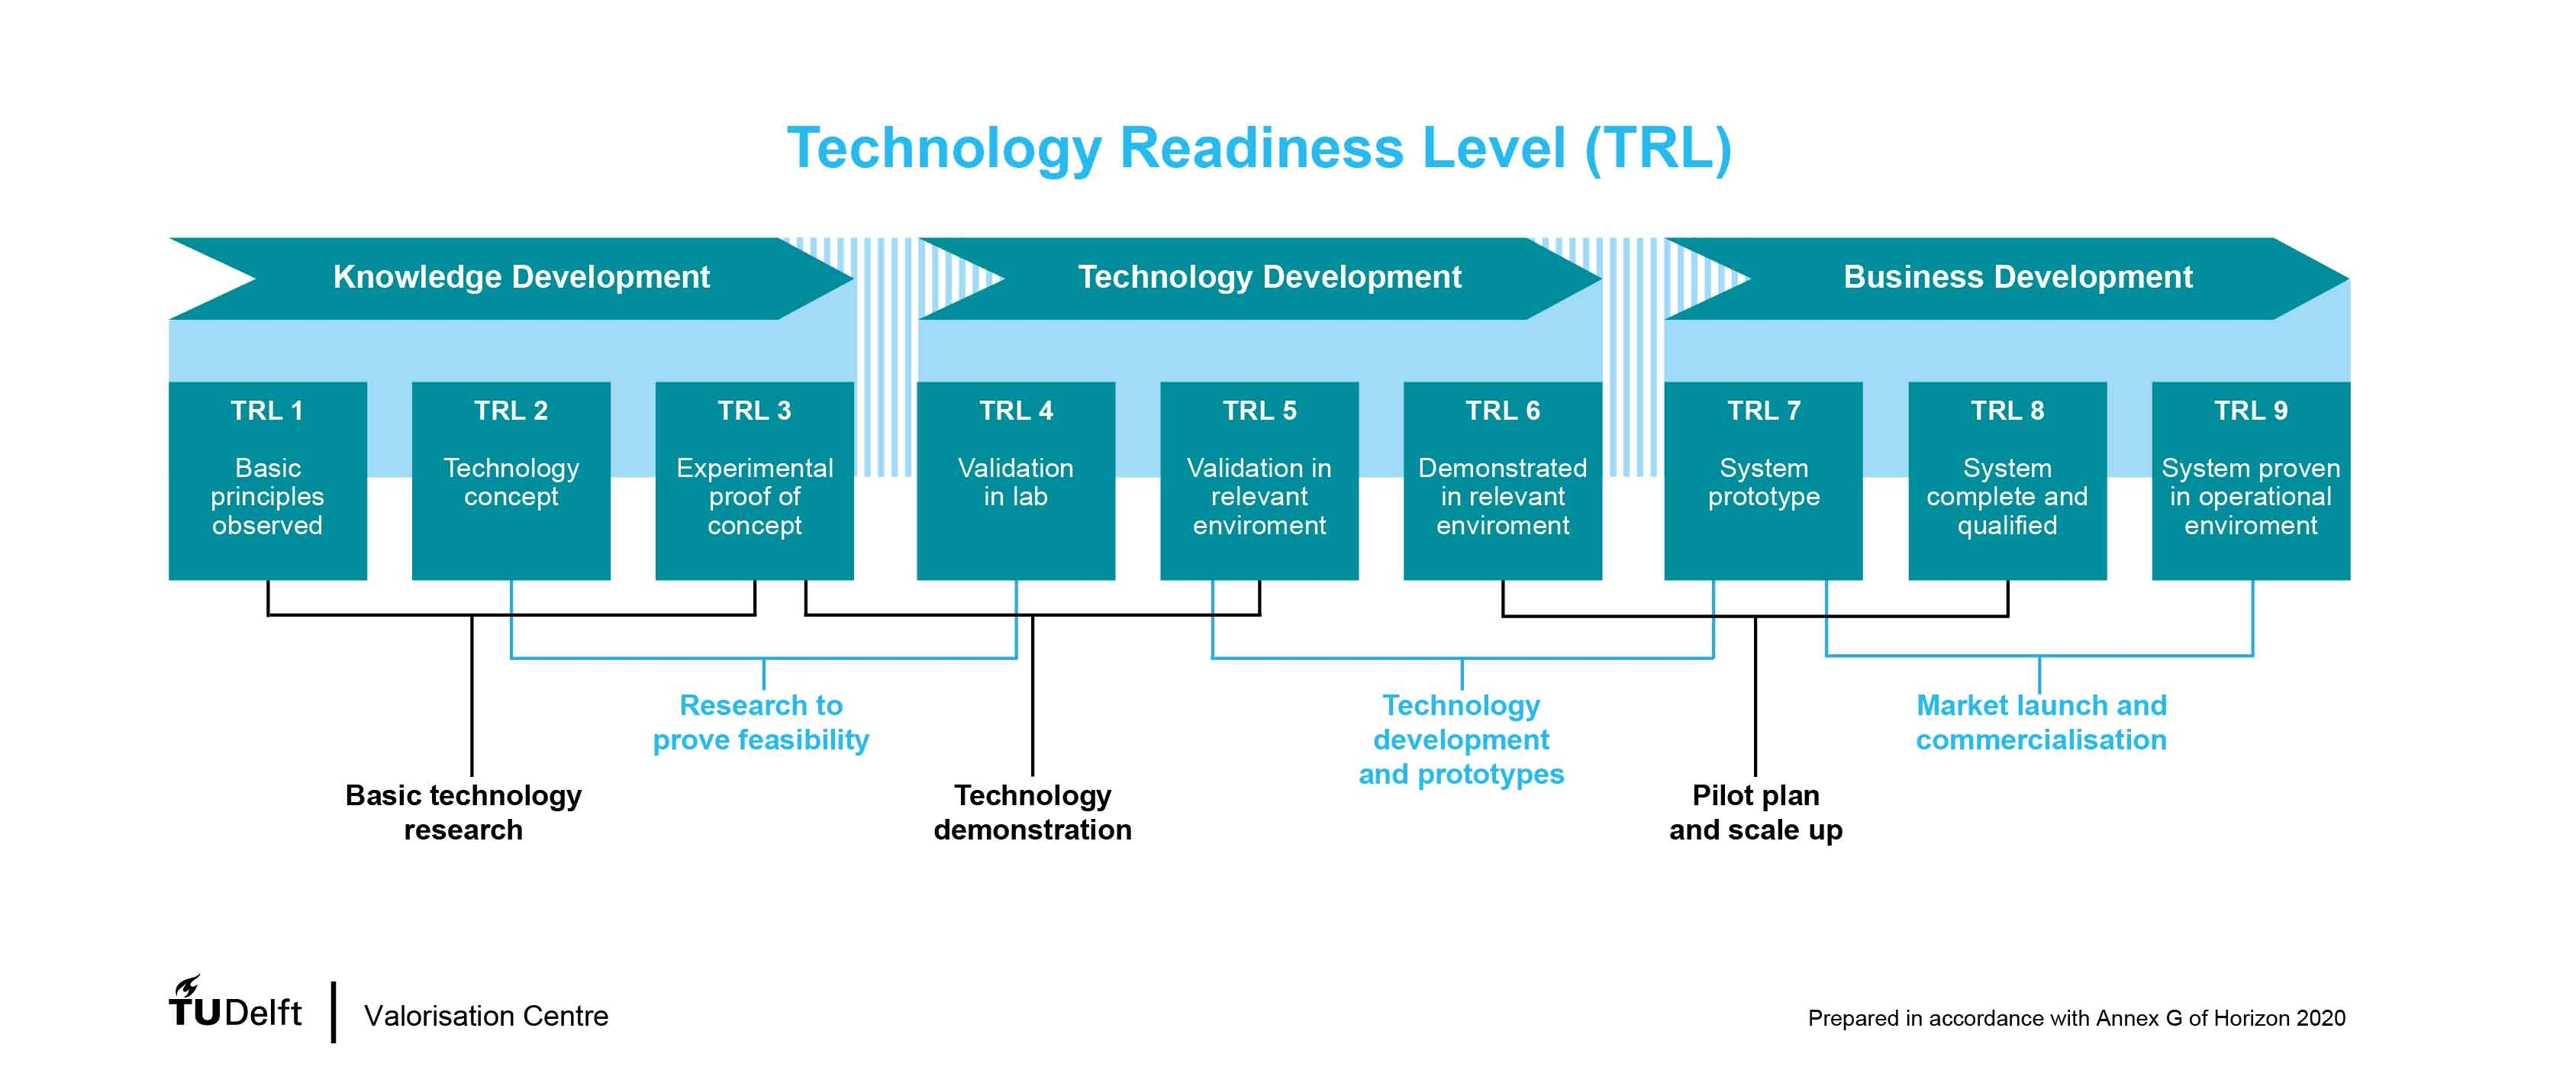 The TRL scale was developed by NASA and their definitions are described below with a link to their website Definition Of Technology Readiness Levels